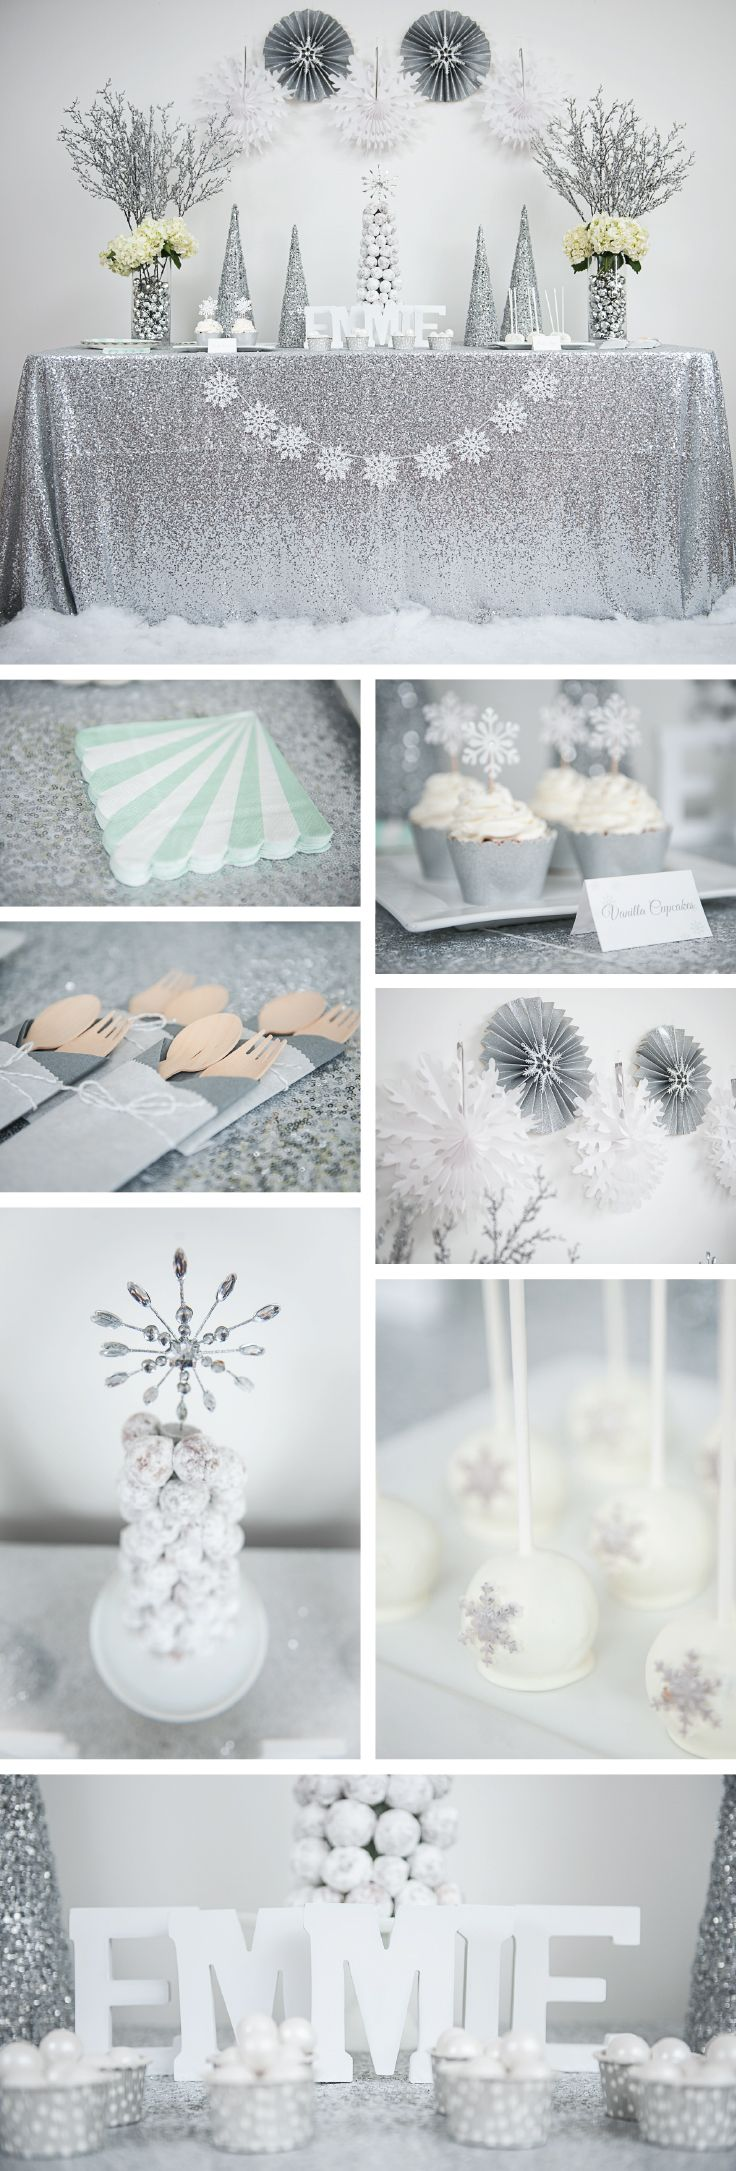 Winter wonderland party and decorations. Silver glitter and teal party. Rent the Kit or buy sweet party supplies at undercoverhostess.com